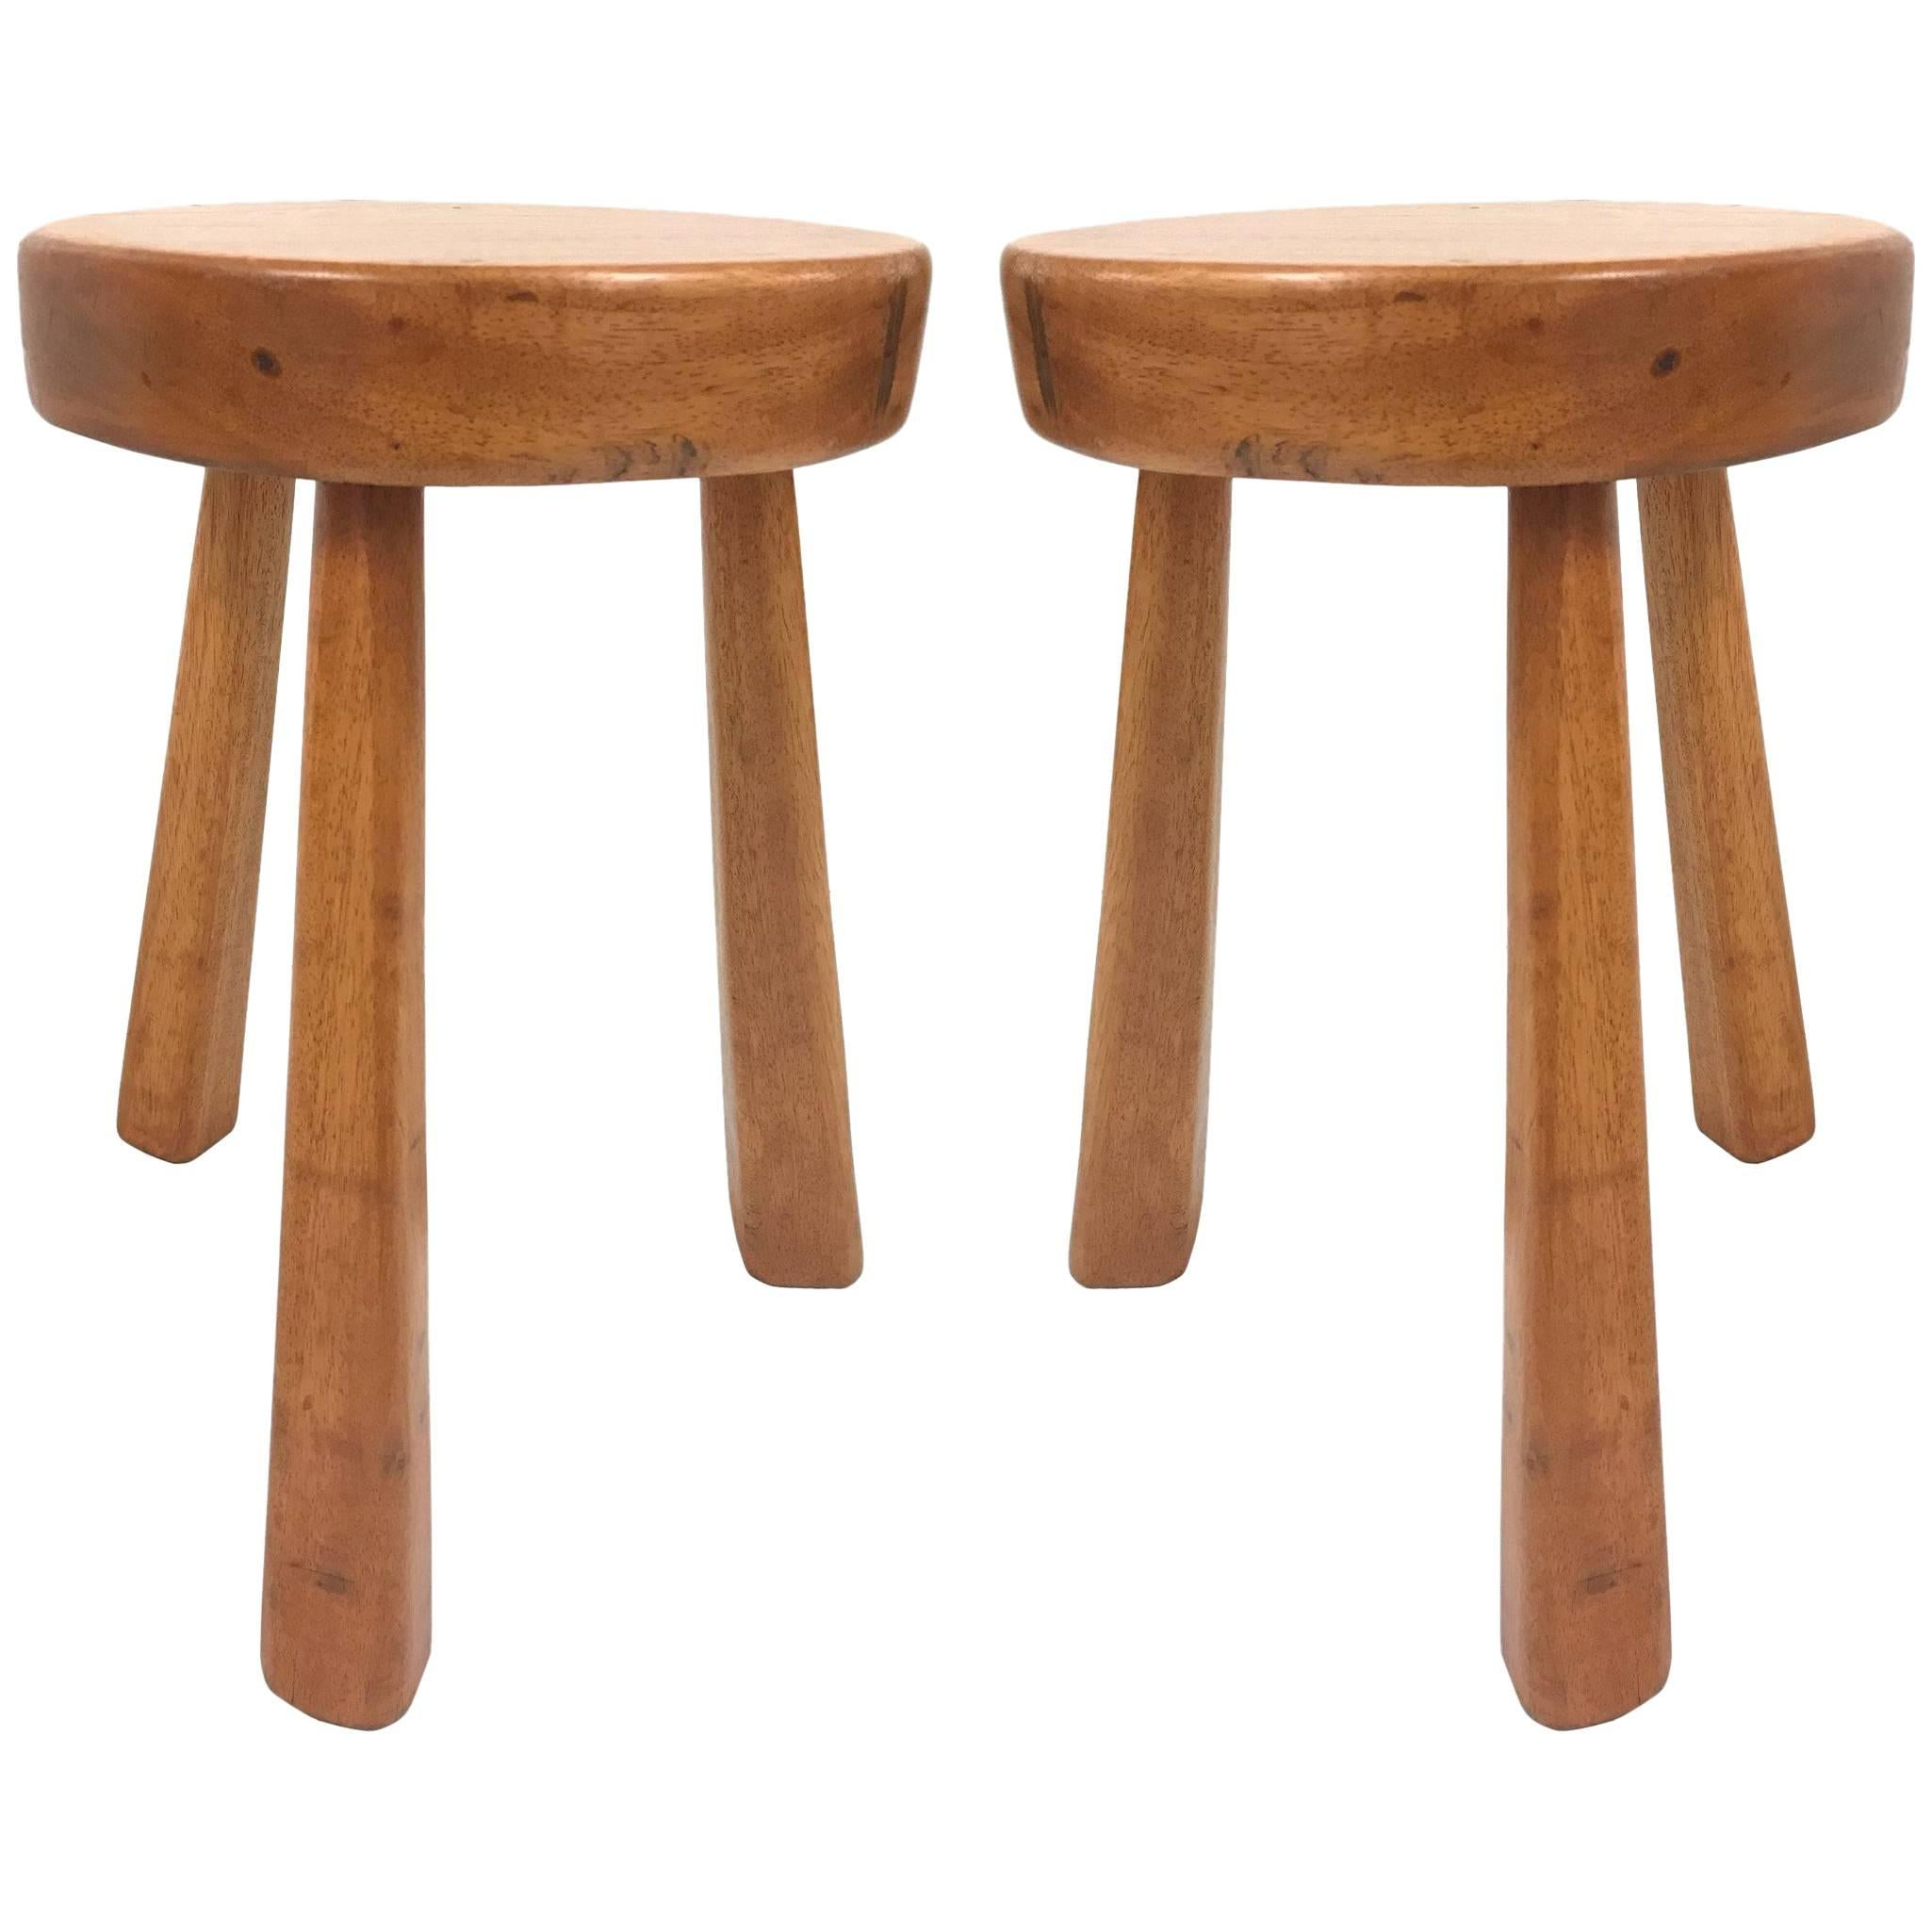 Pair of Charlotte Perriand Stools for Les Arcs